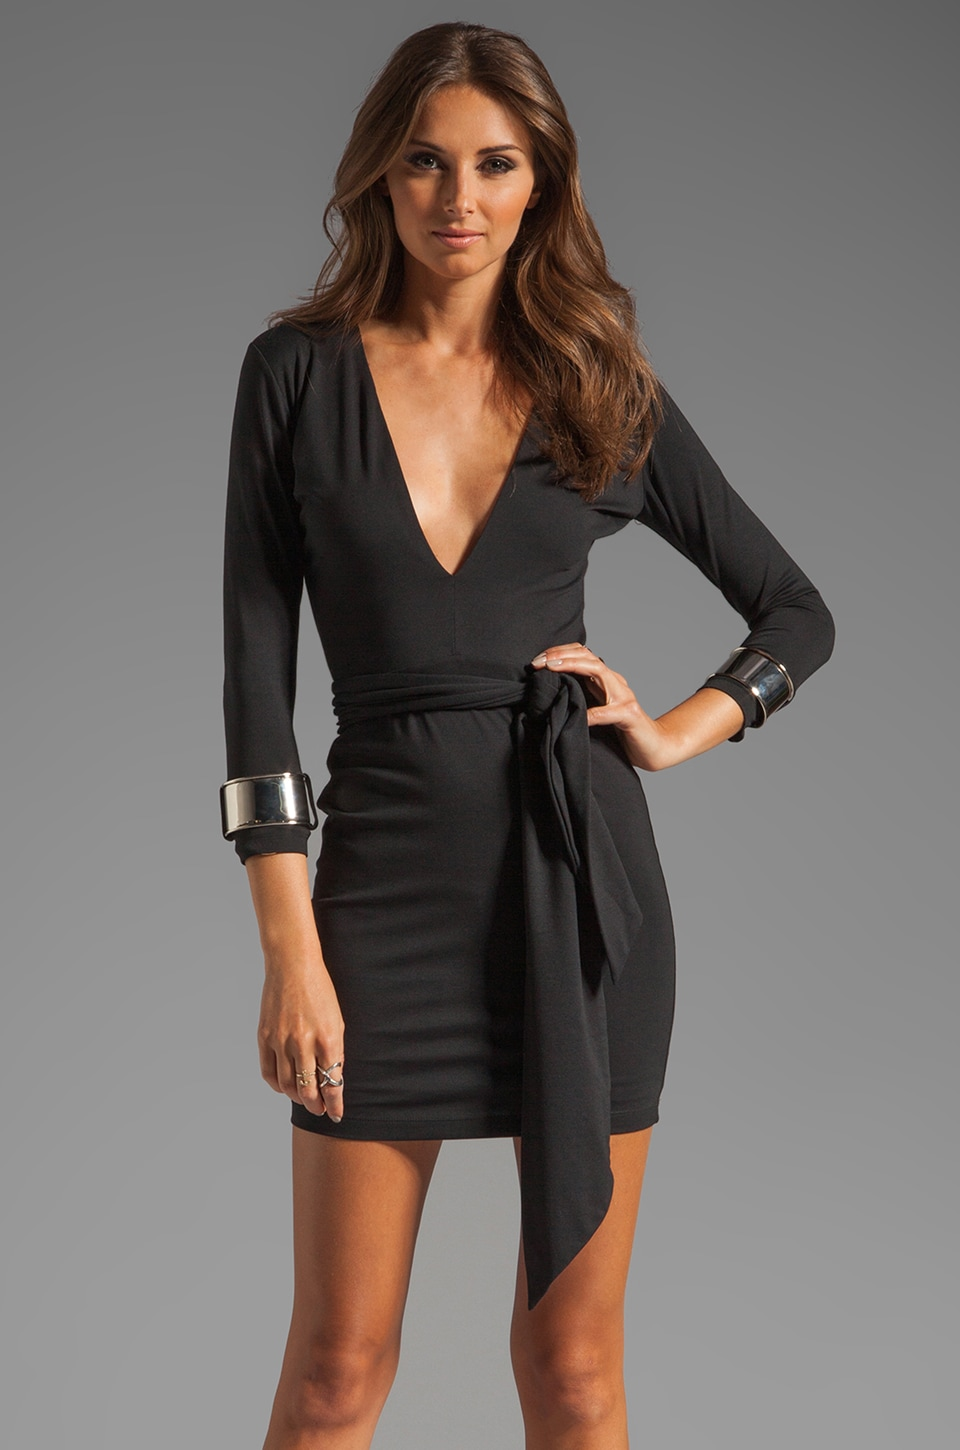 BEC&BRIDGE Jaguar Long Sleeve Cuff Dress in Black